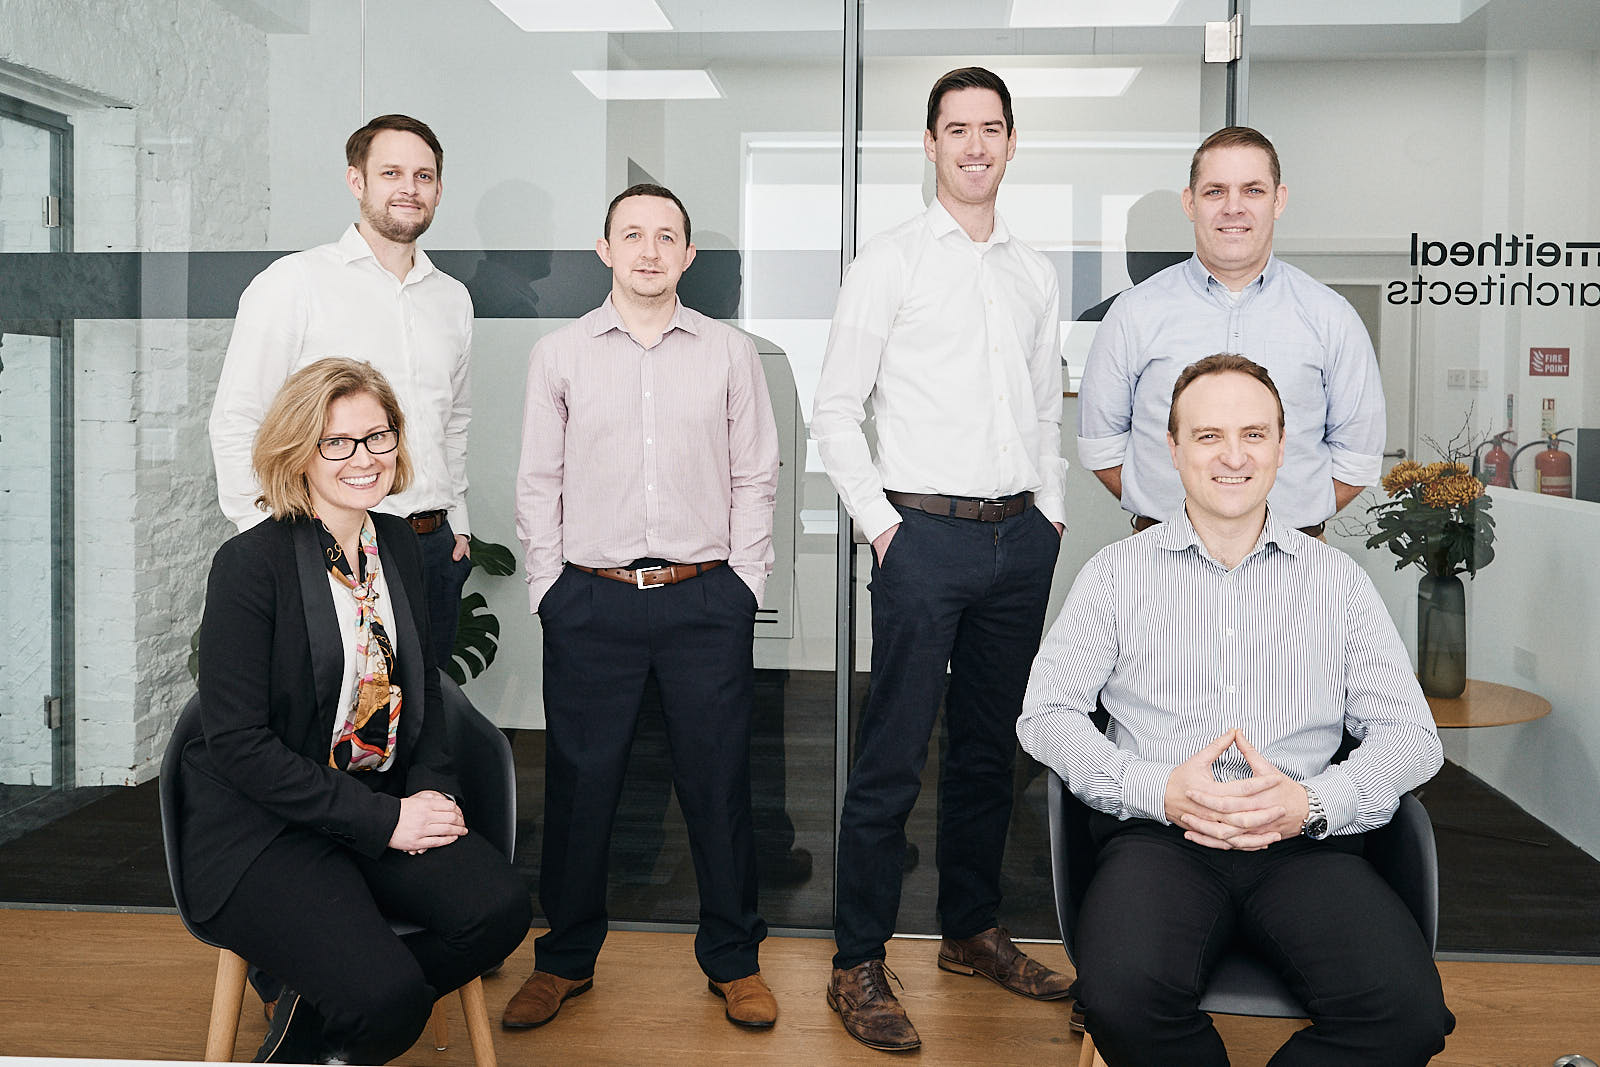 Meitheal Staff Promotions Architecture Ireland, Urban Design, Dublin/Cork/Kerry Architecture